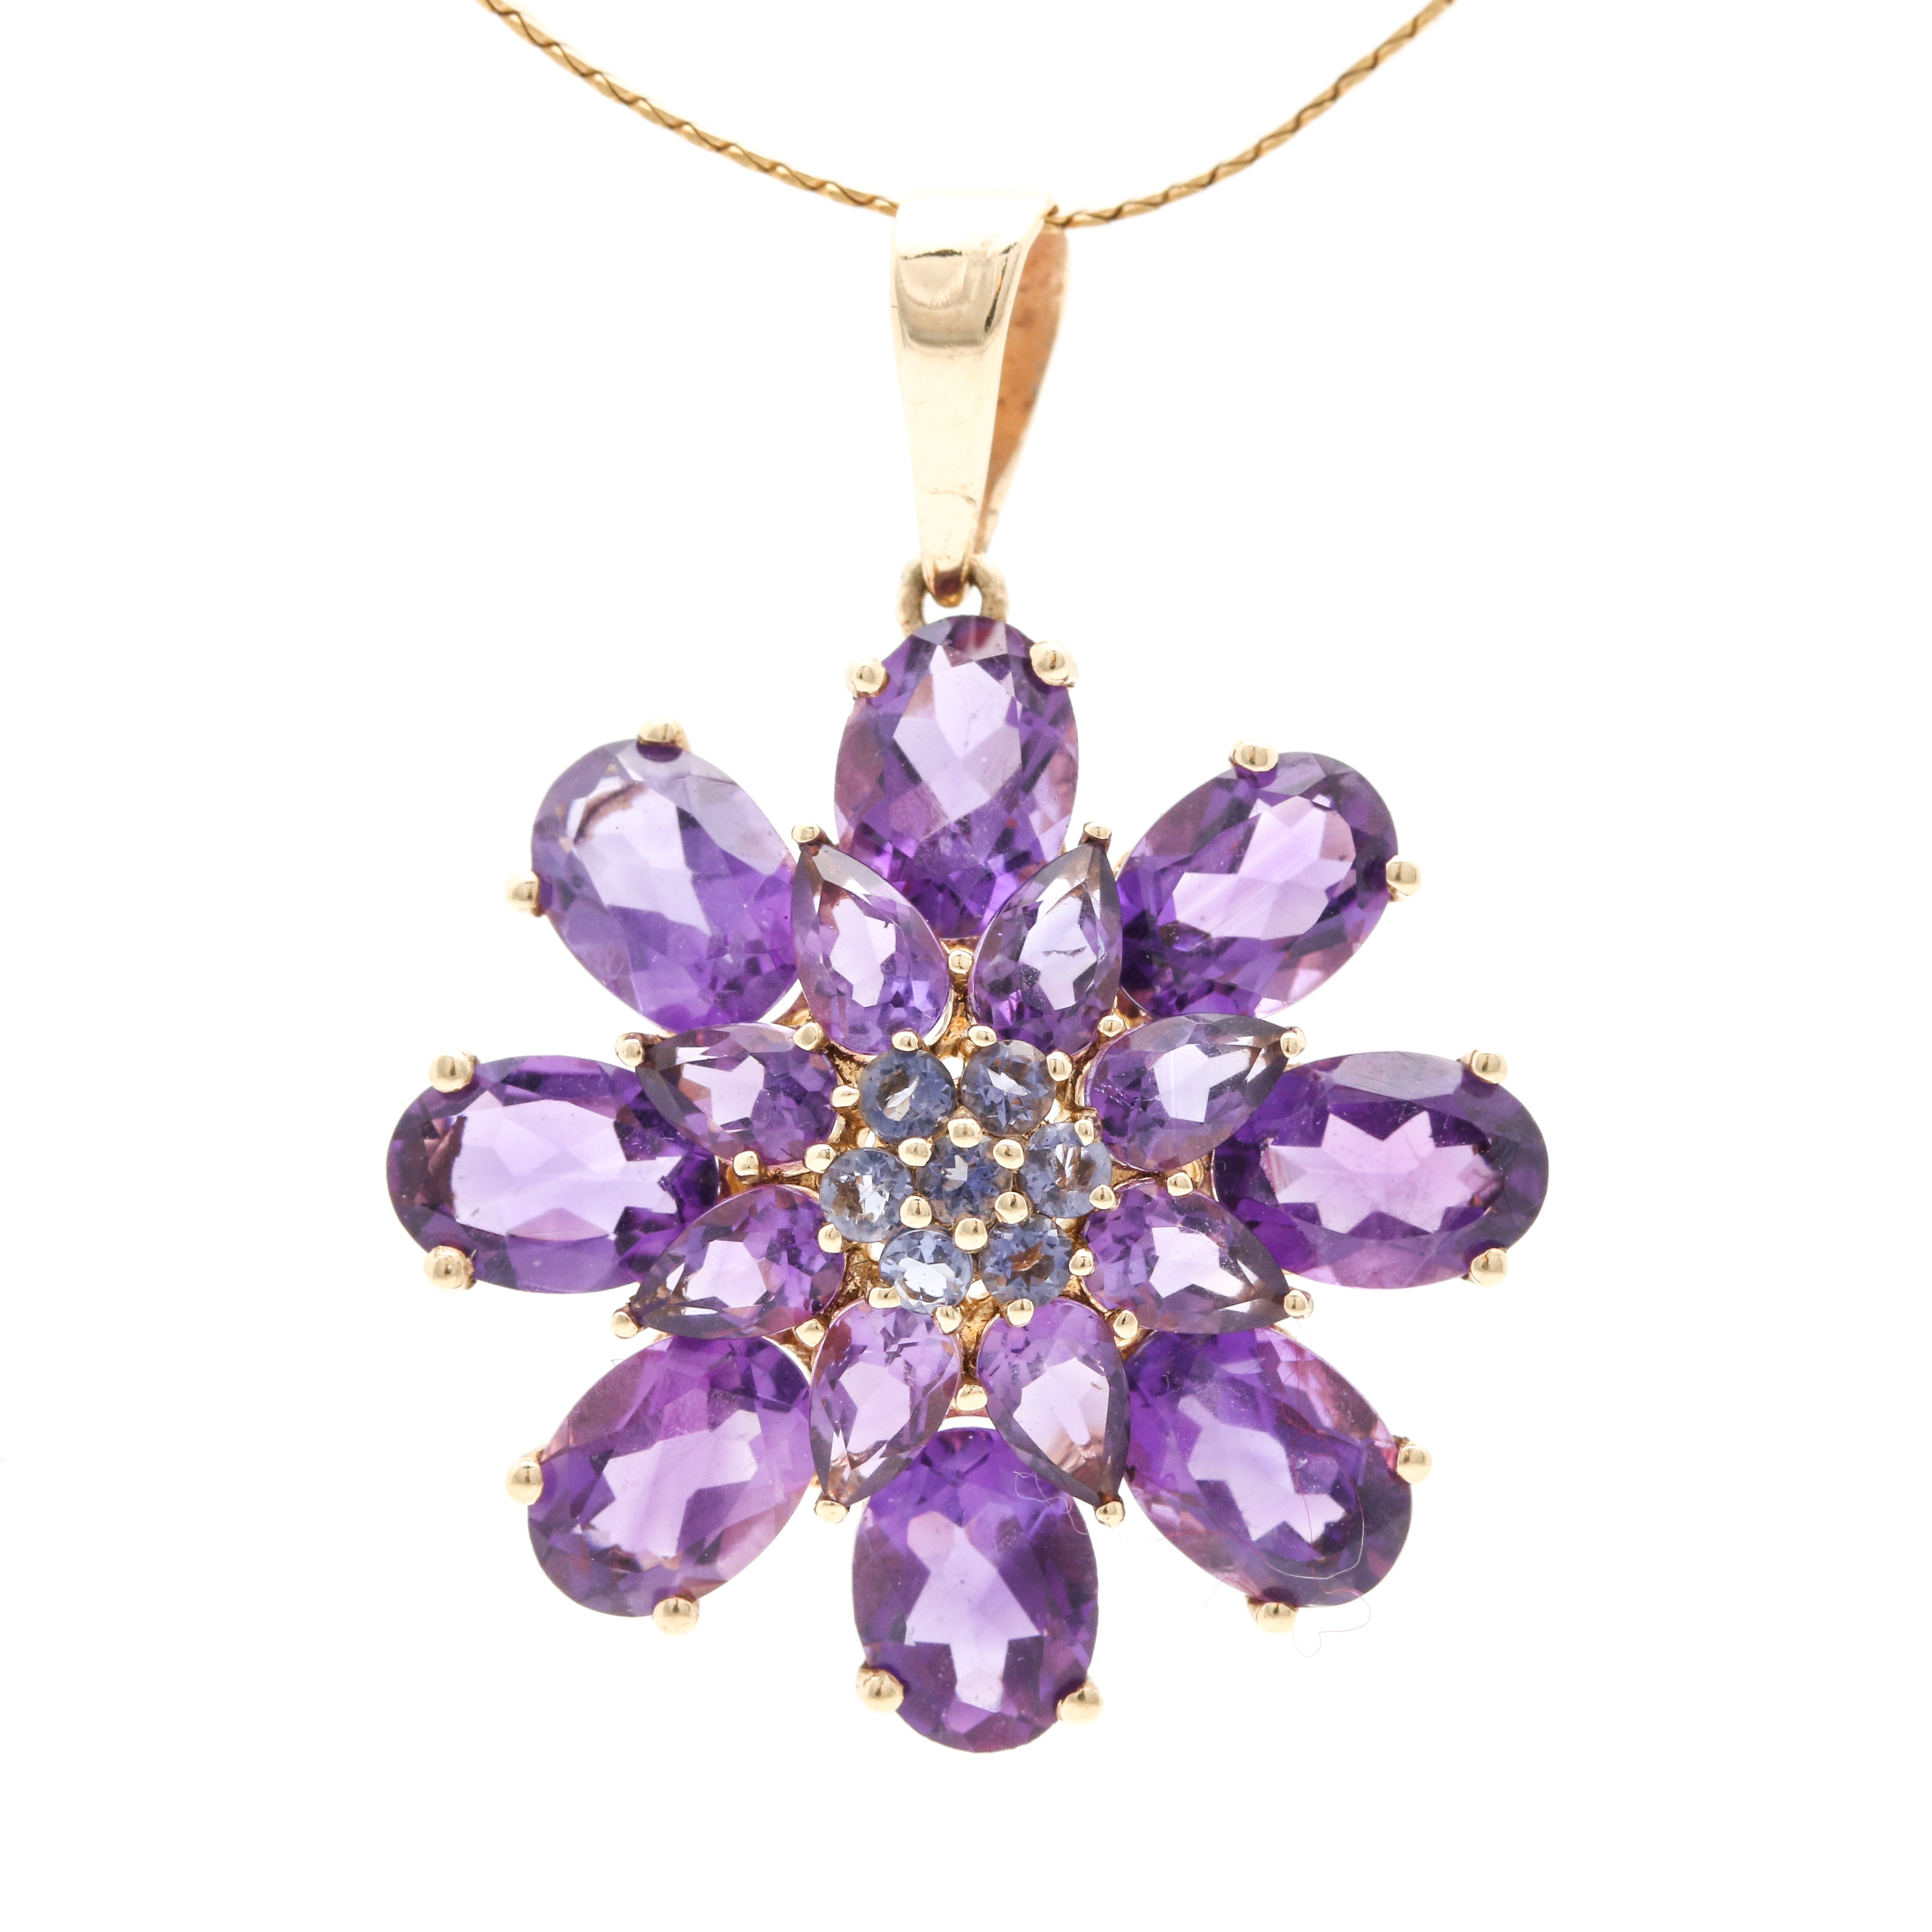 10K and 14K Yellow Gold Amethyst and Iolite Pendant Necklace